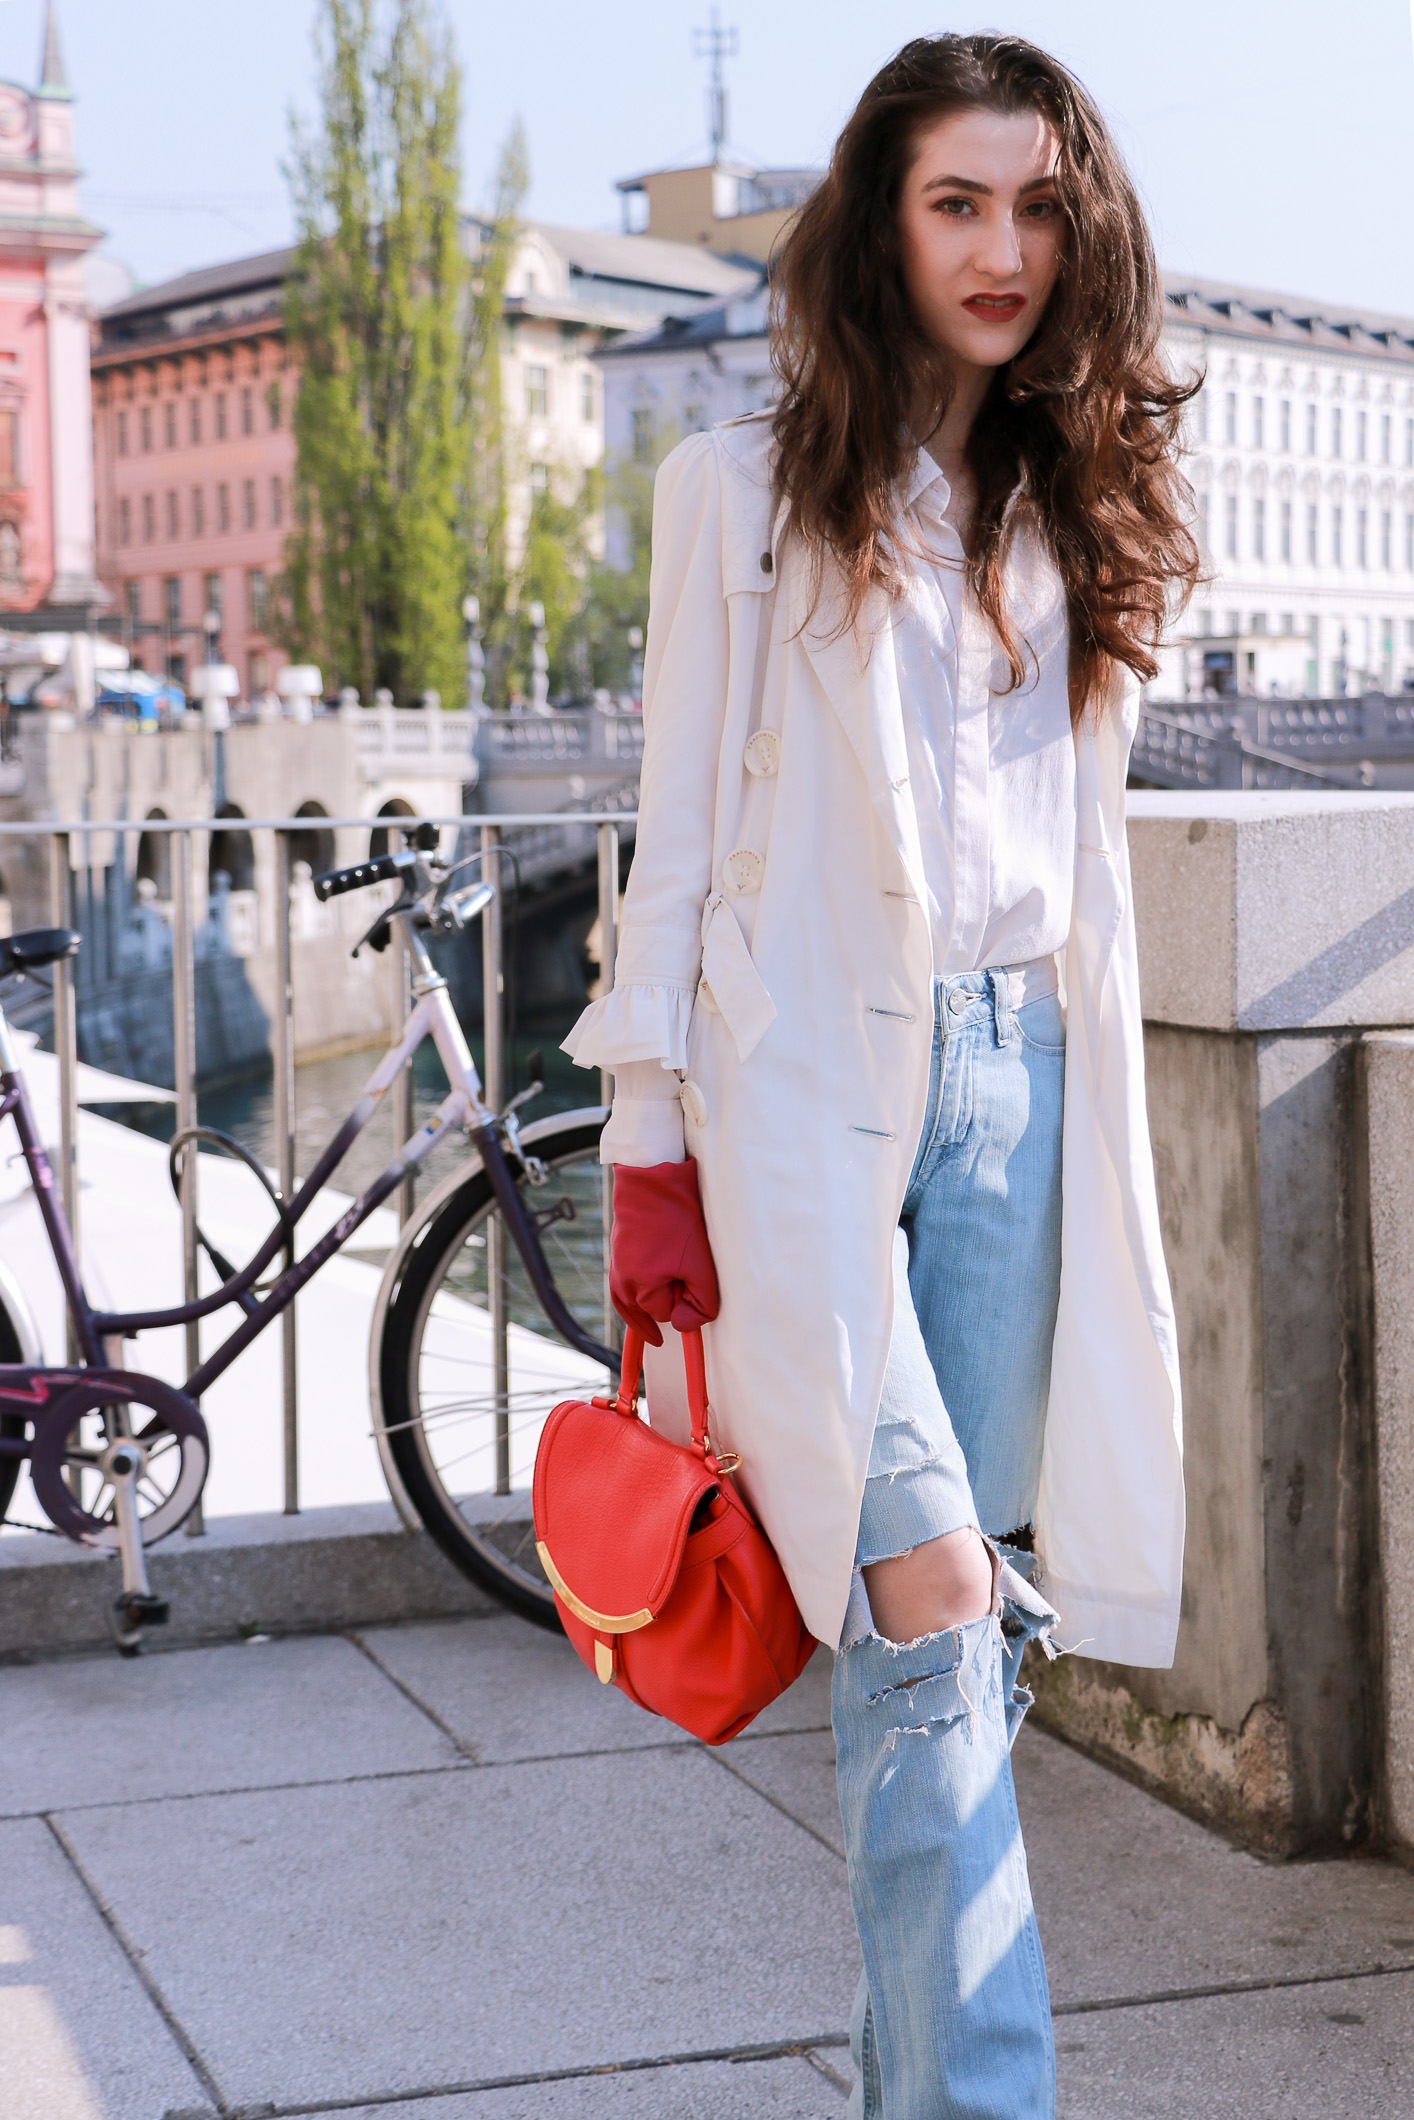 Fashion blogger Veronika Lipar of Brunette From Wall Street sharing how to style white trench coat